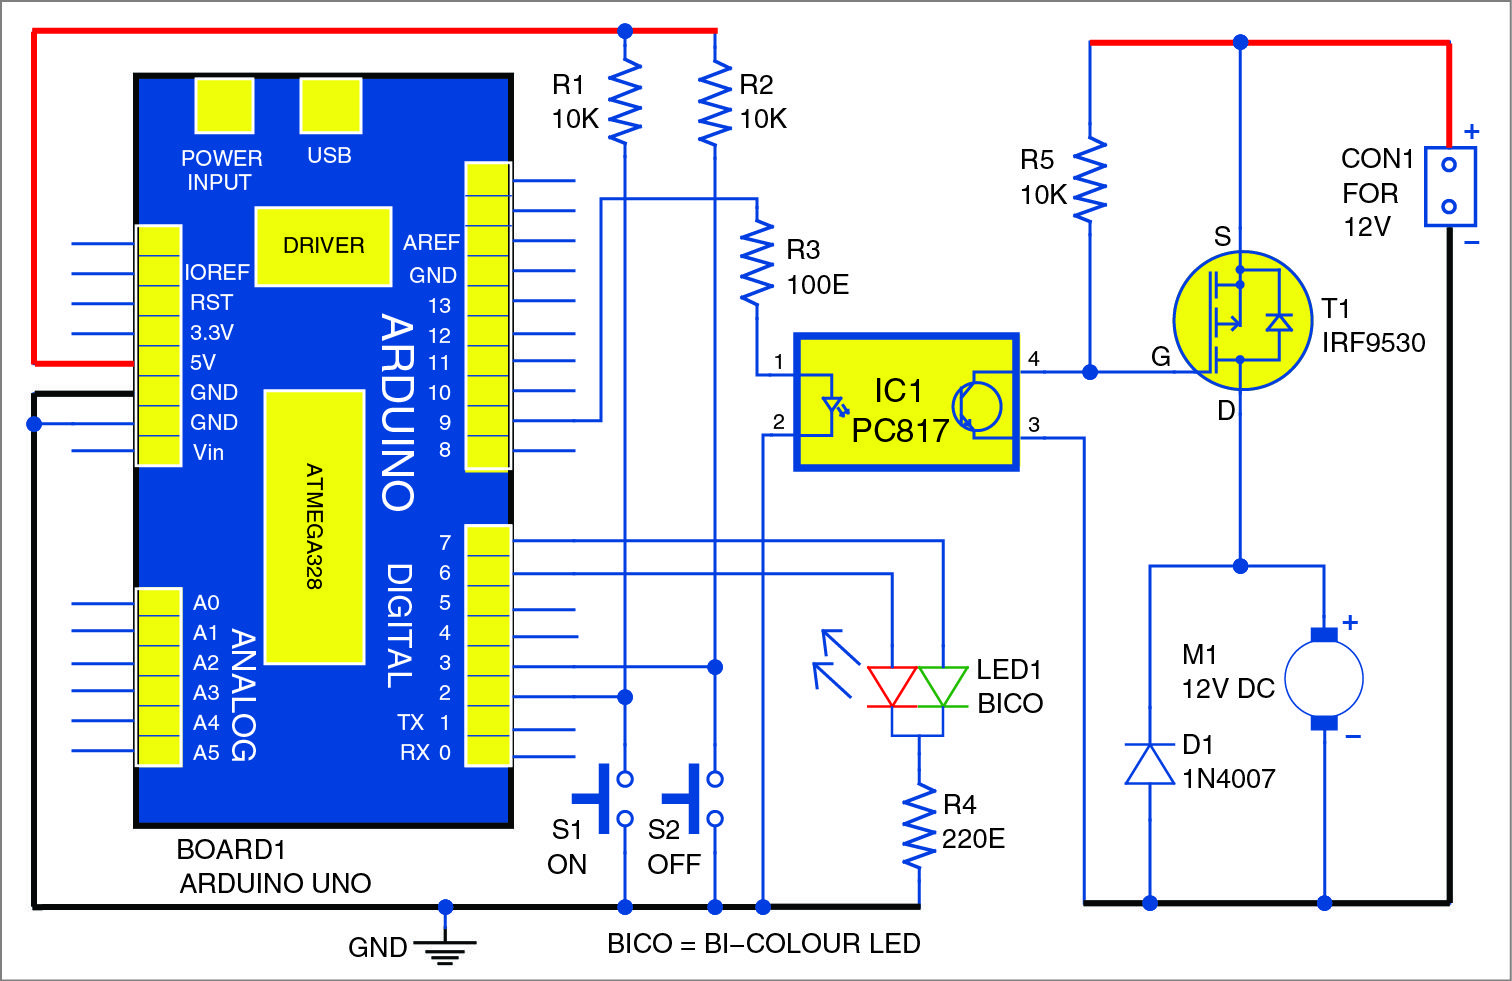 Here we describe an electronic DC motor starter using Arduino Uno. This  circuit controls both soft-start and soft-stop timings through PWM.